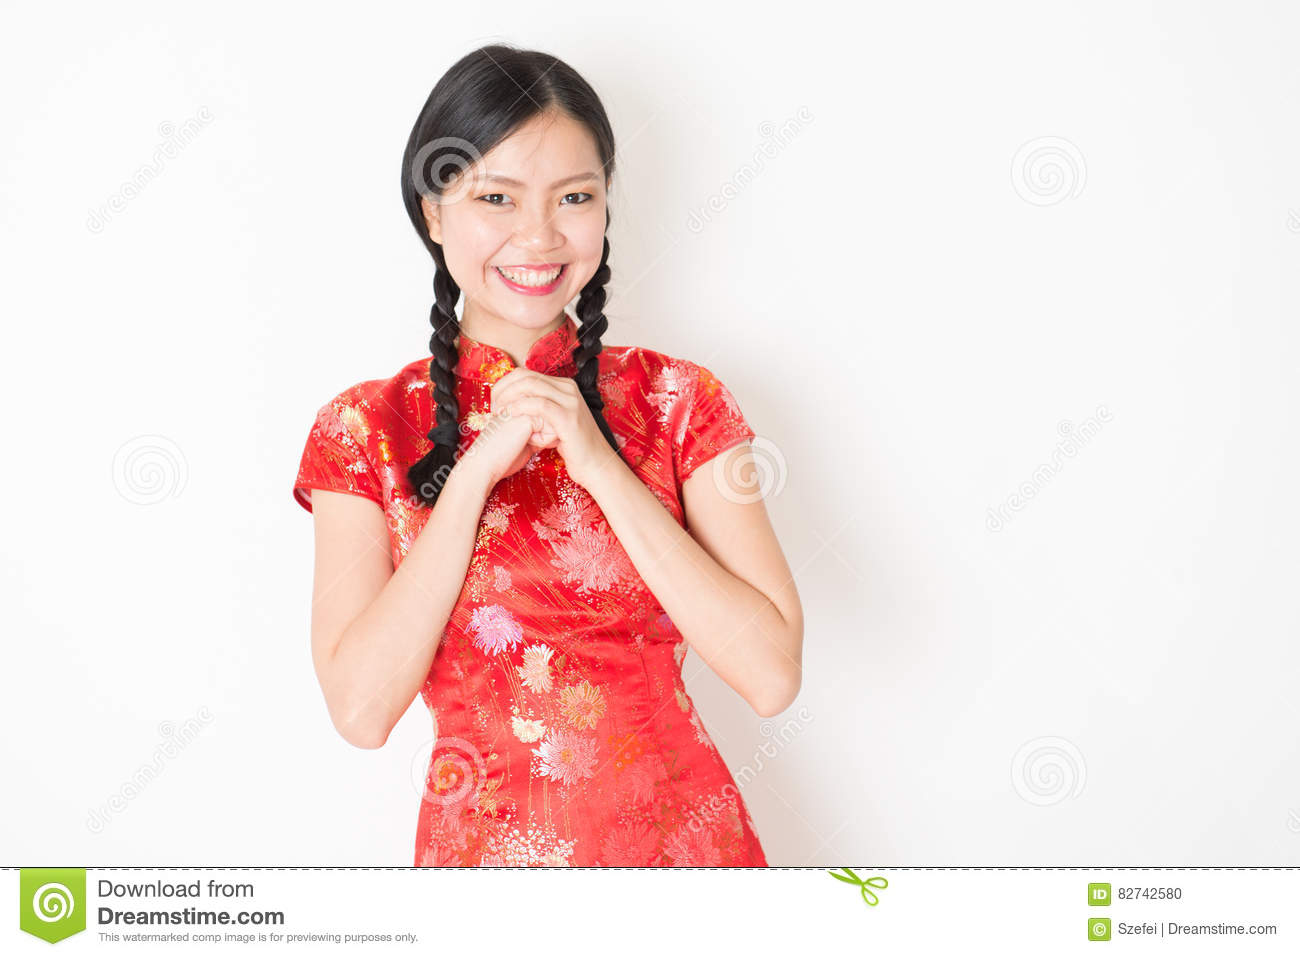 cc6ac299c Portrait of young Asian girl in traditional qipao dress smiling and  greeting, celebrating Chinese Lunar New Year or spring festival, standing  on plain ...